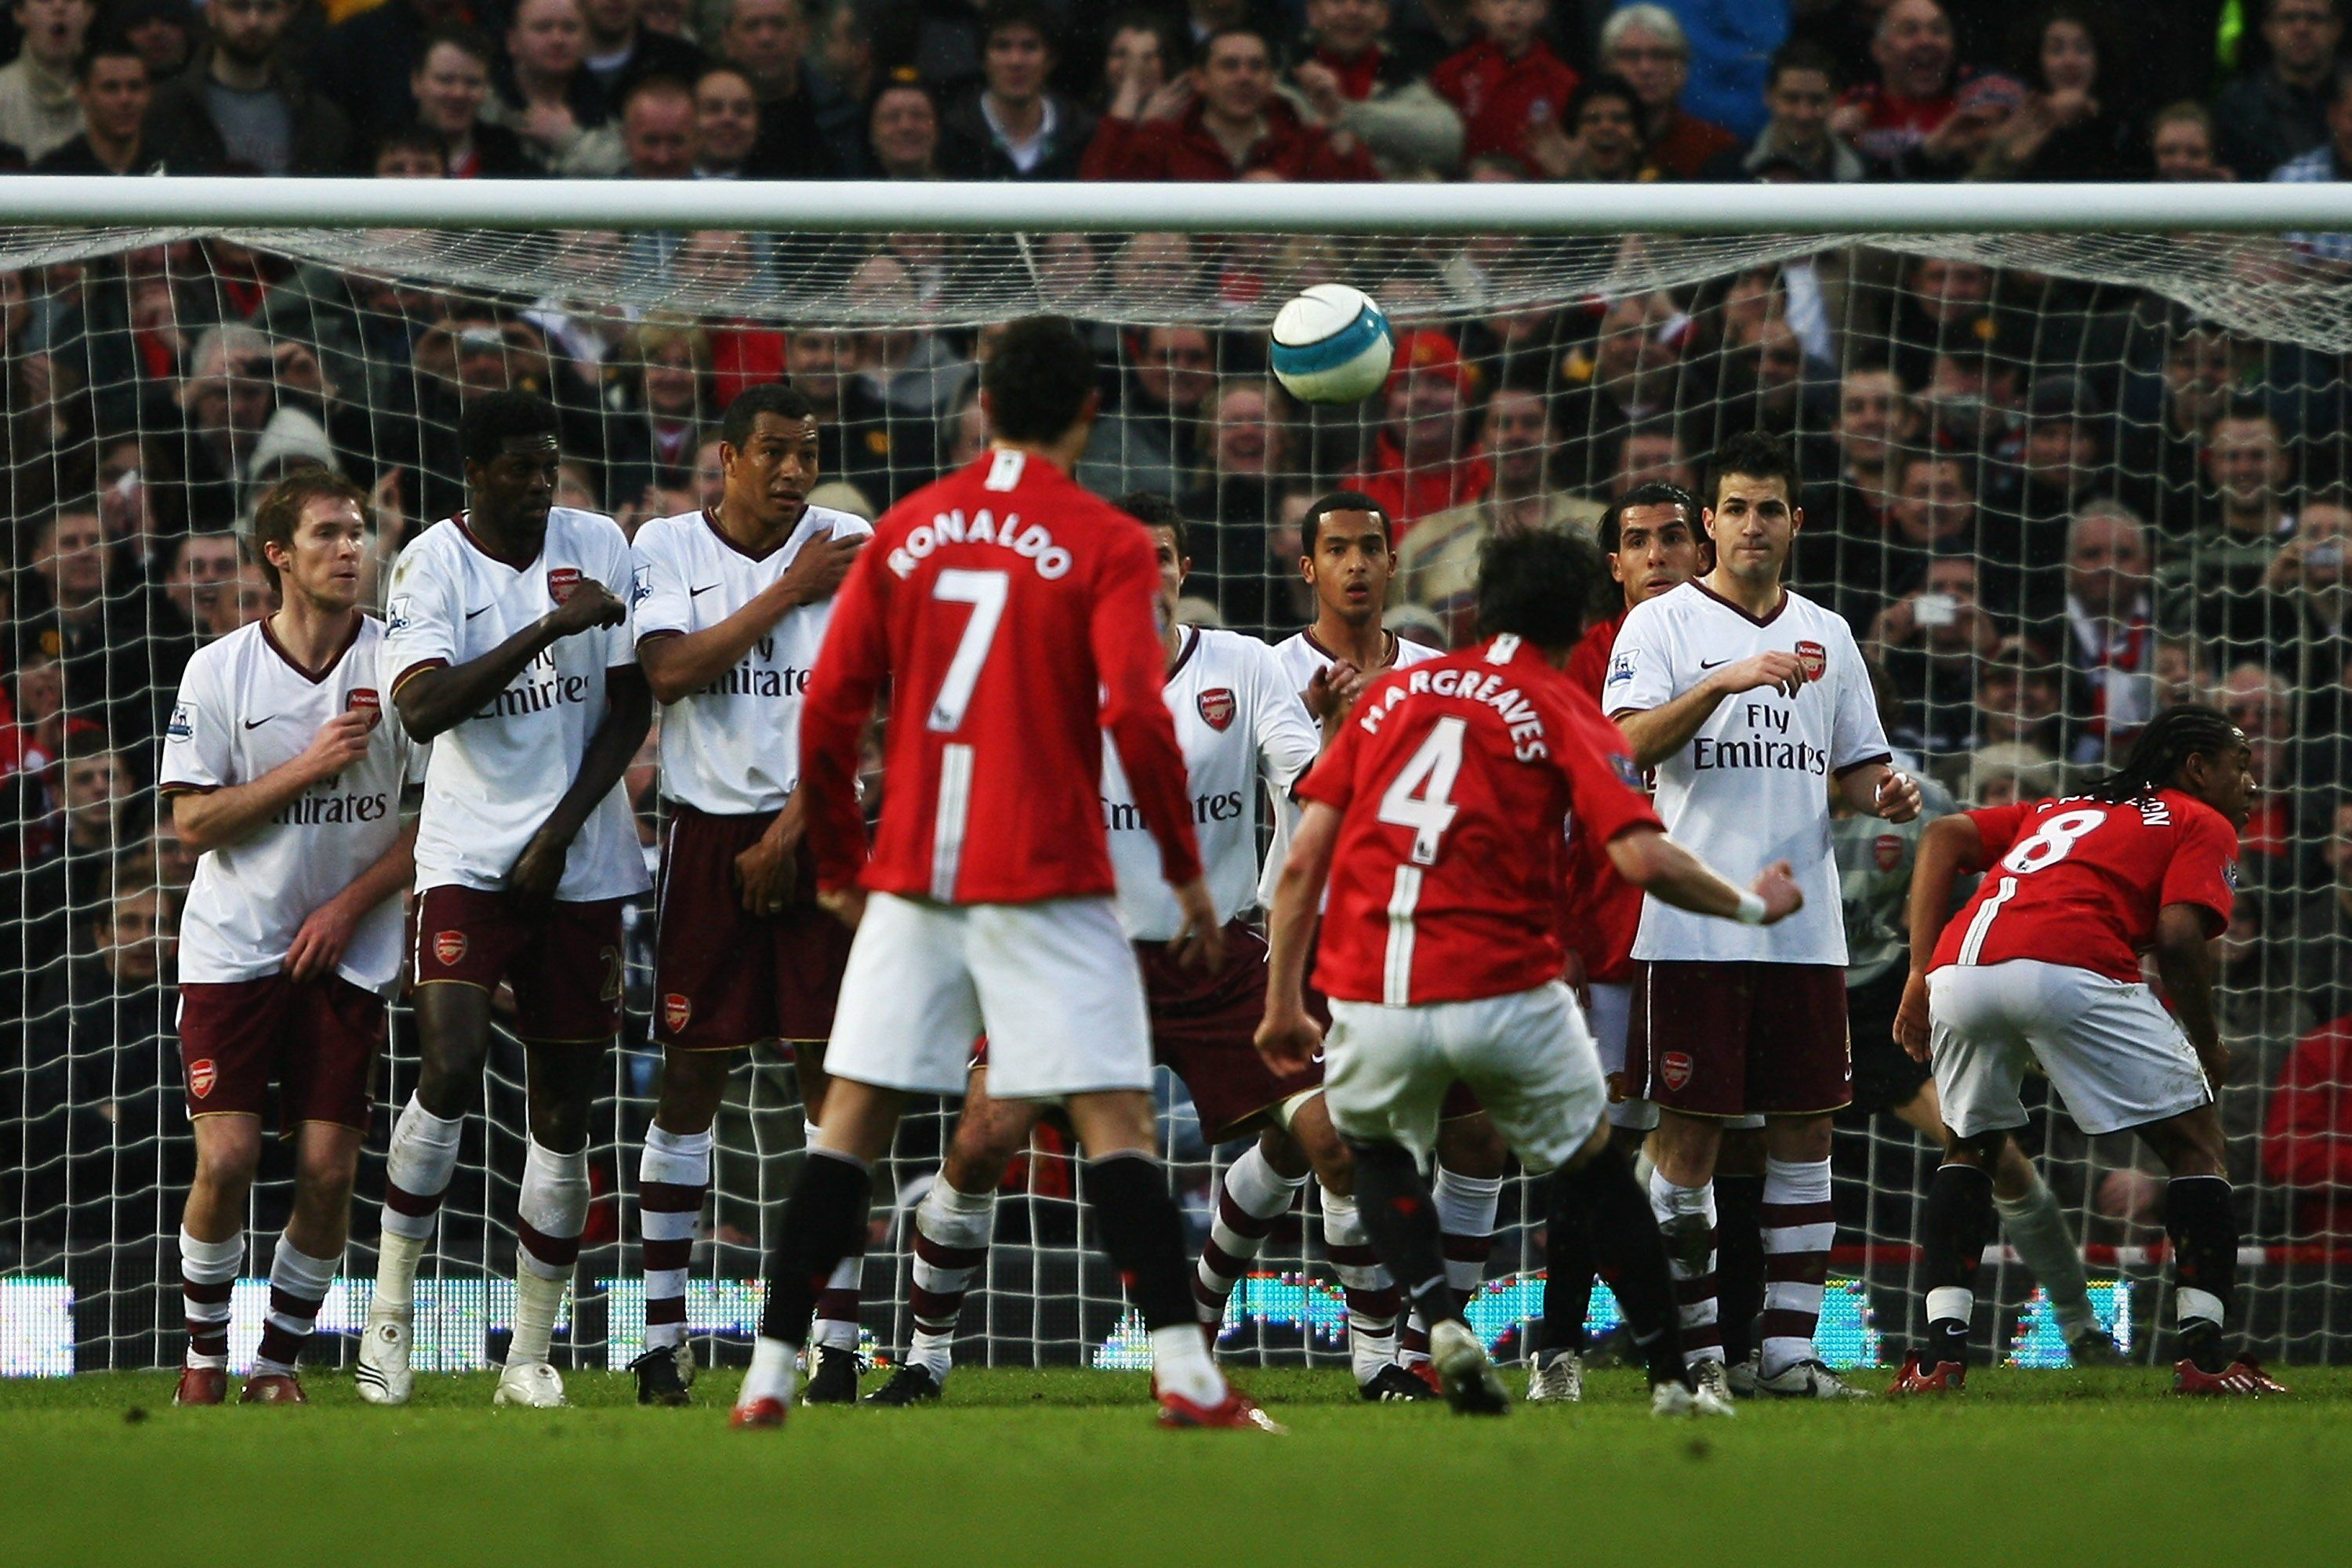 Hargreaves Vs Arsenal With Images Manchester United Official